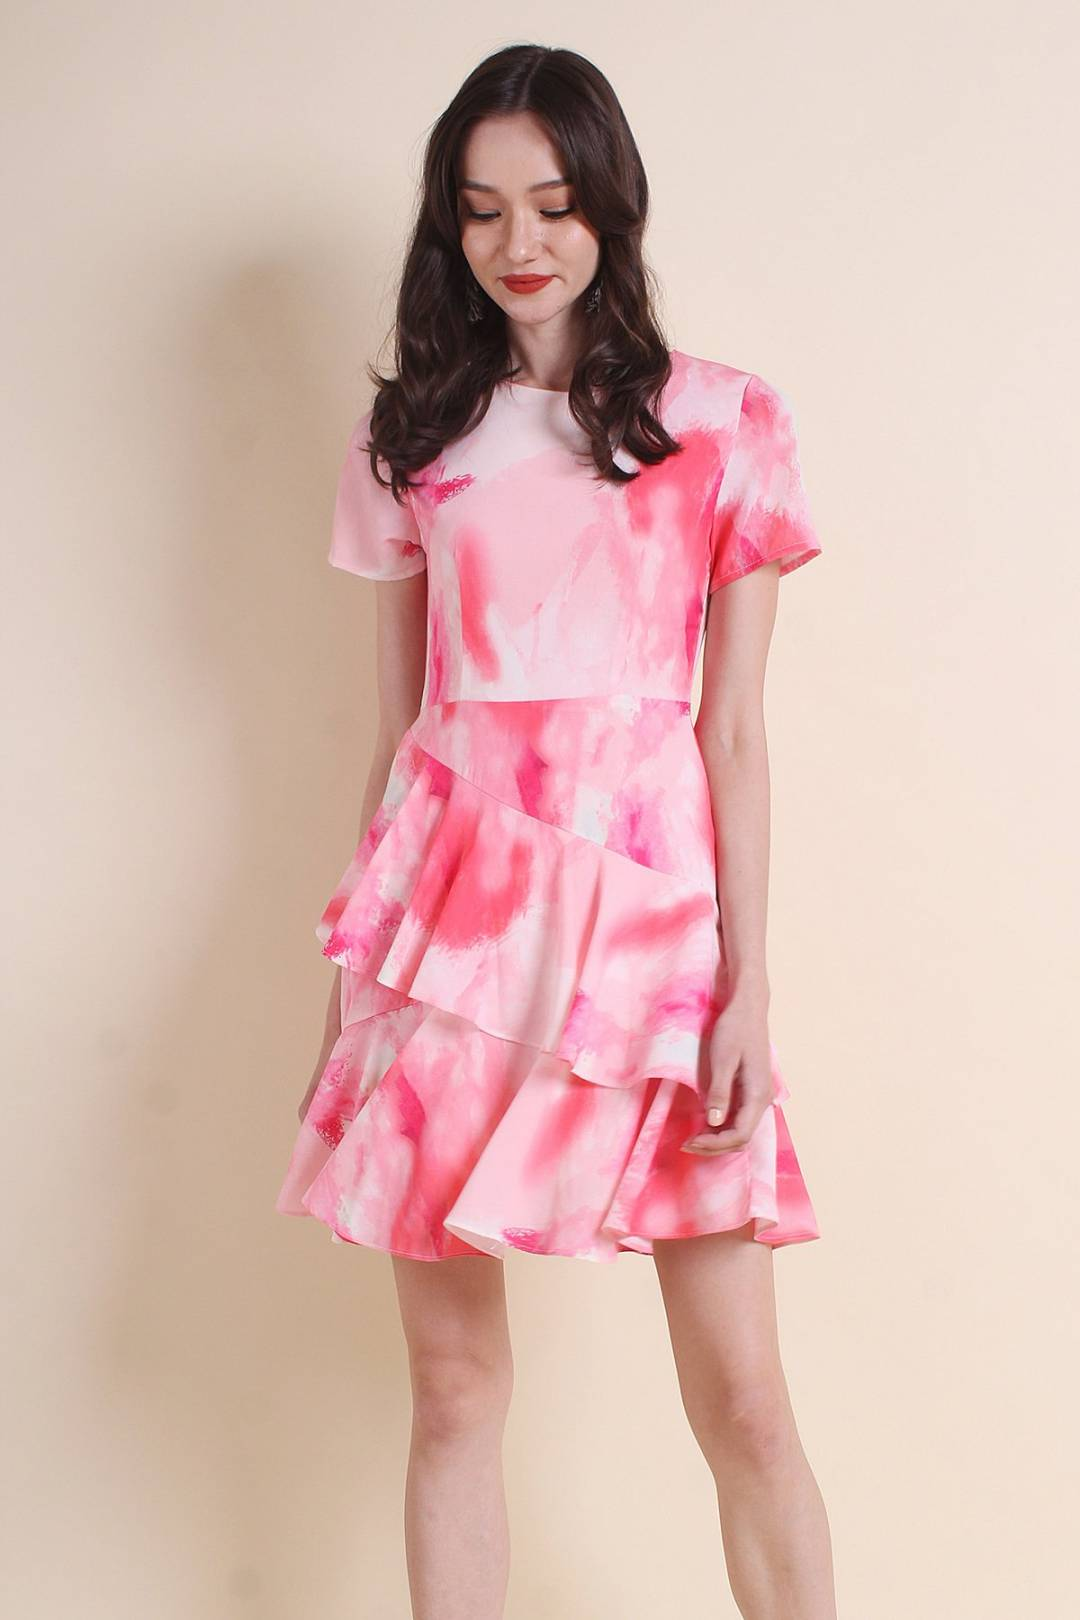 MADEBYNM NELLIE RUFFLES TIER WAISTED DRESS IN PINK ABSTRACT [XS/S/M/L]